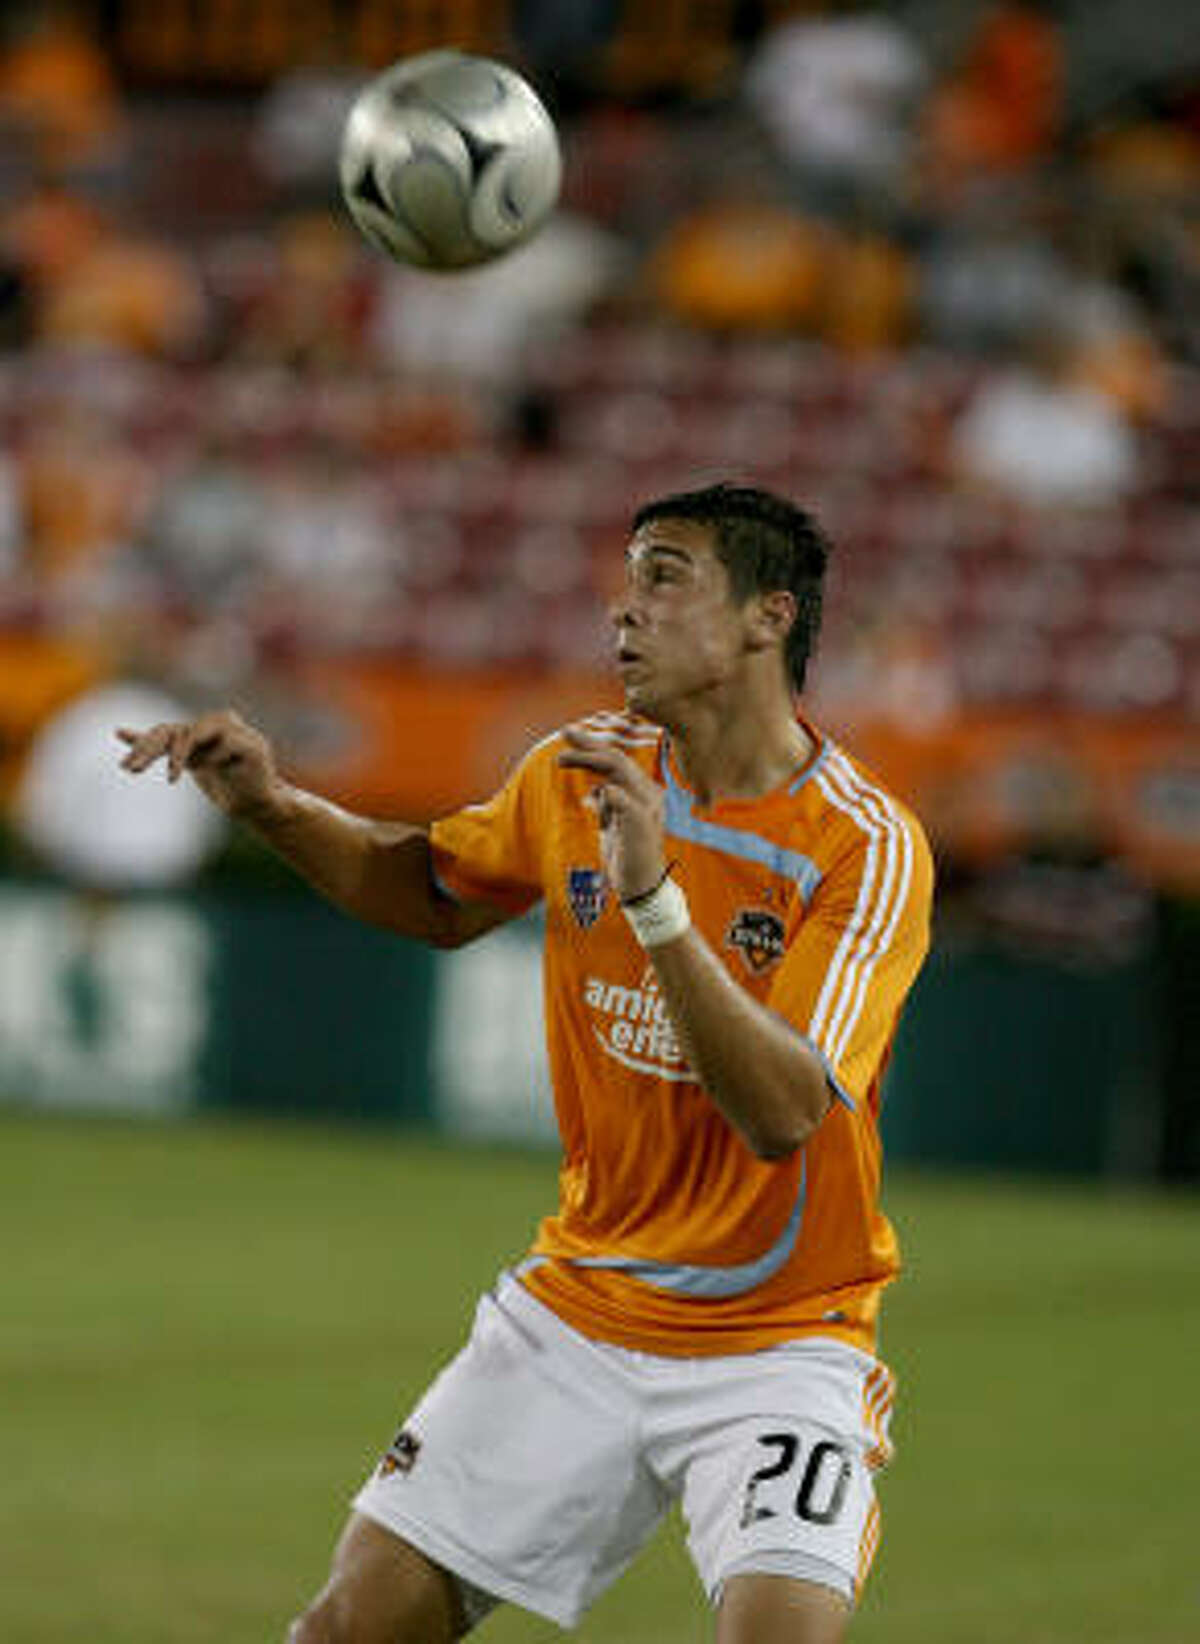 Good players can be found deep in the draft. In 2008, the Dynamo took Geoff Cameron with the 42nd pick.